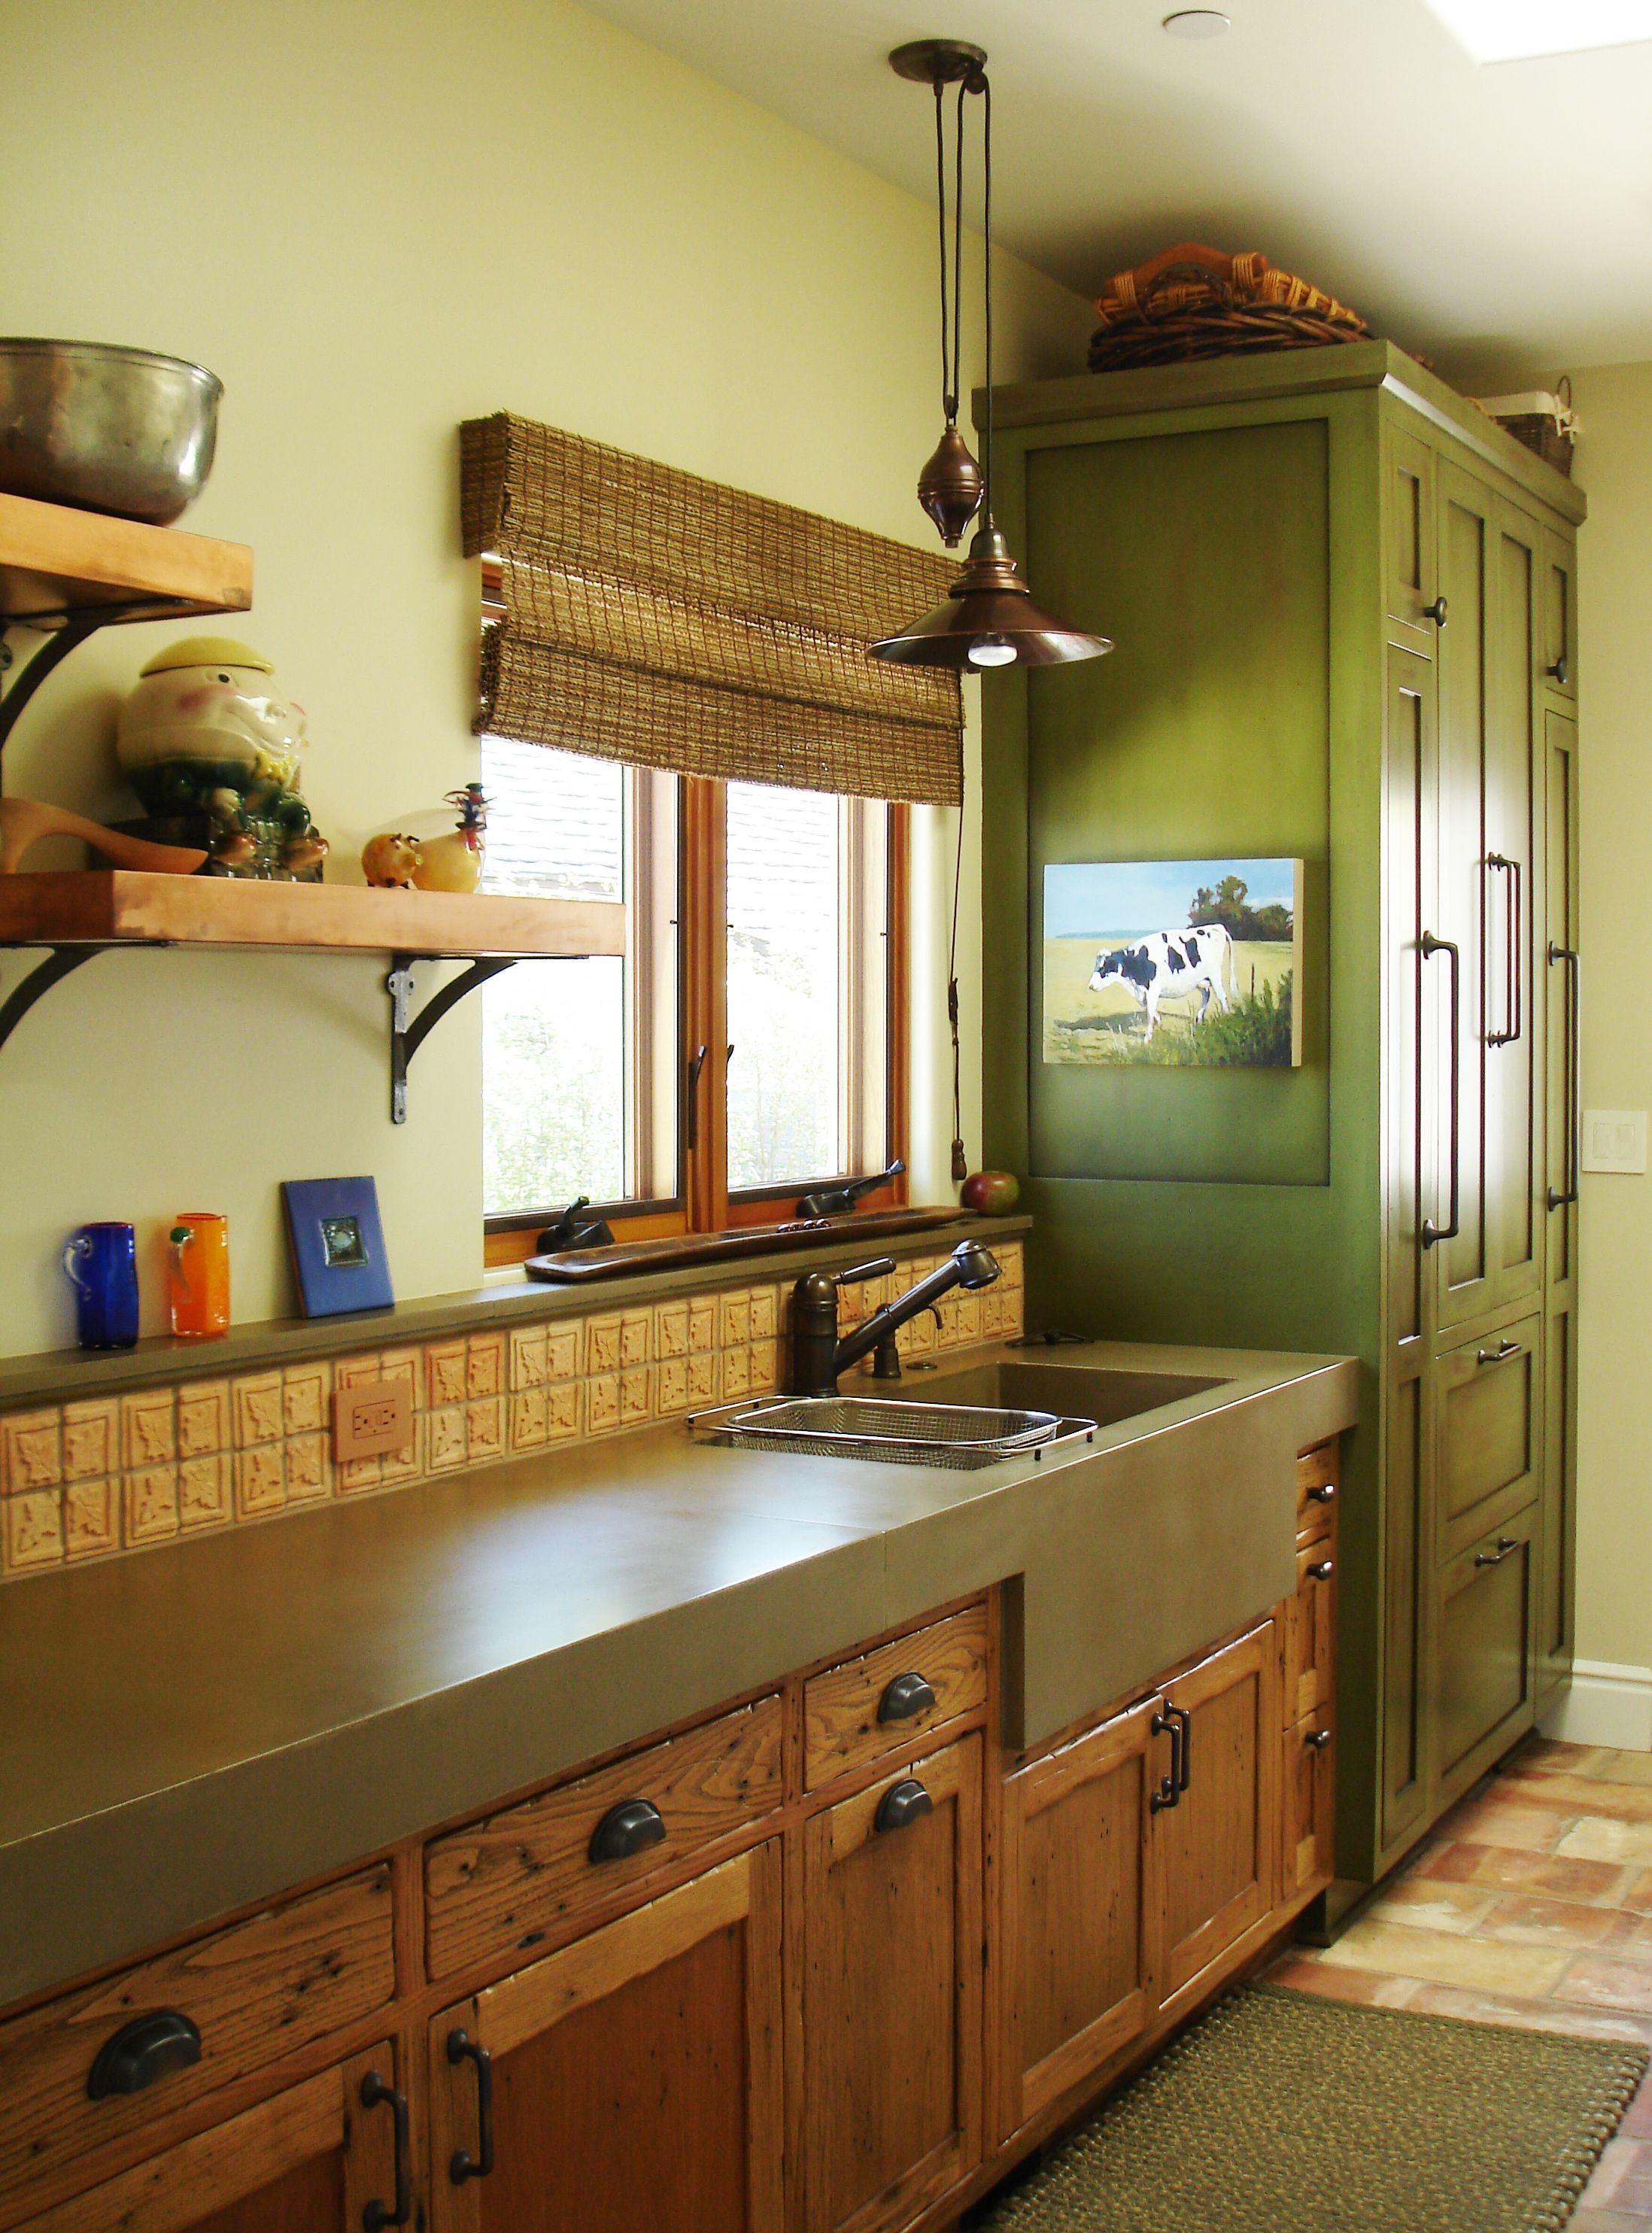 Eclectic ranch kitchen design Eclectic ranch kitchen